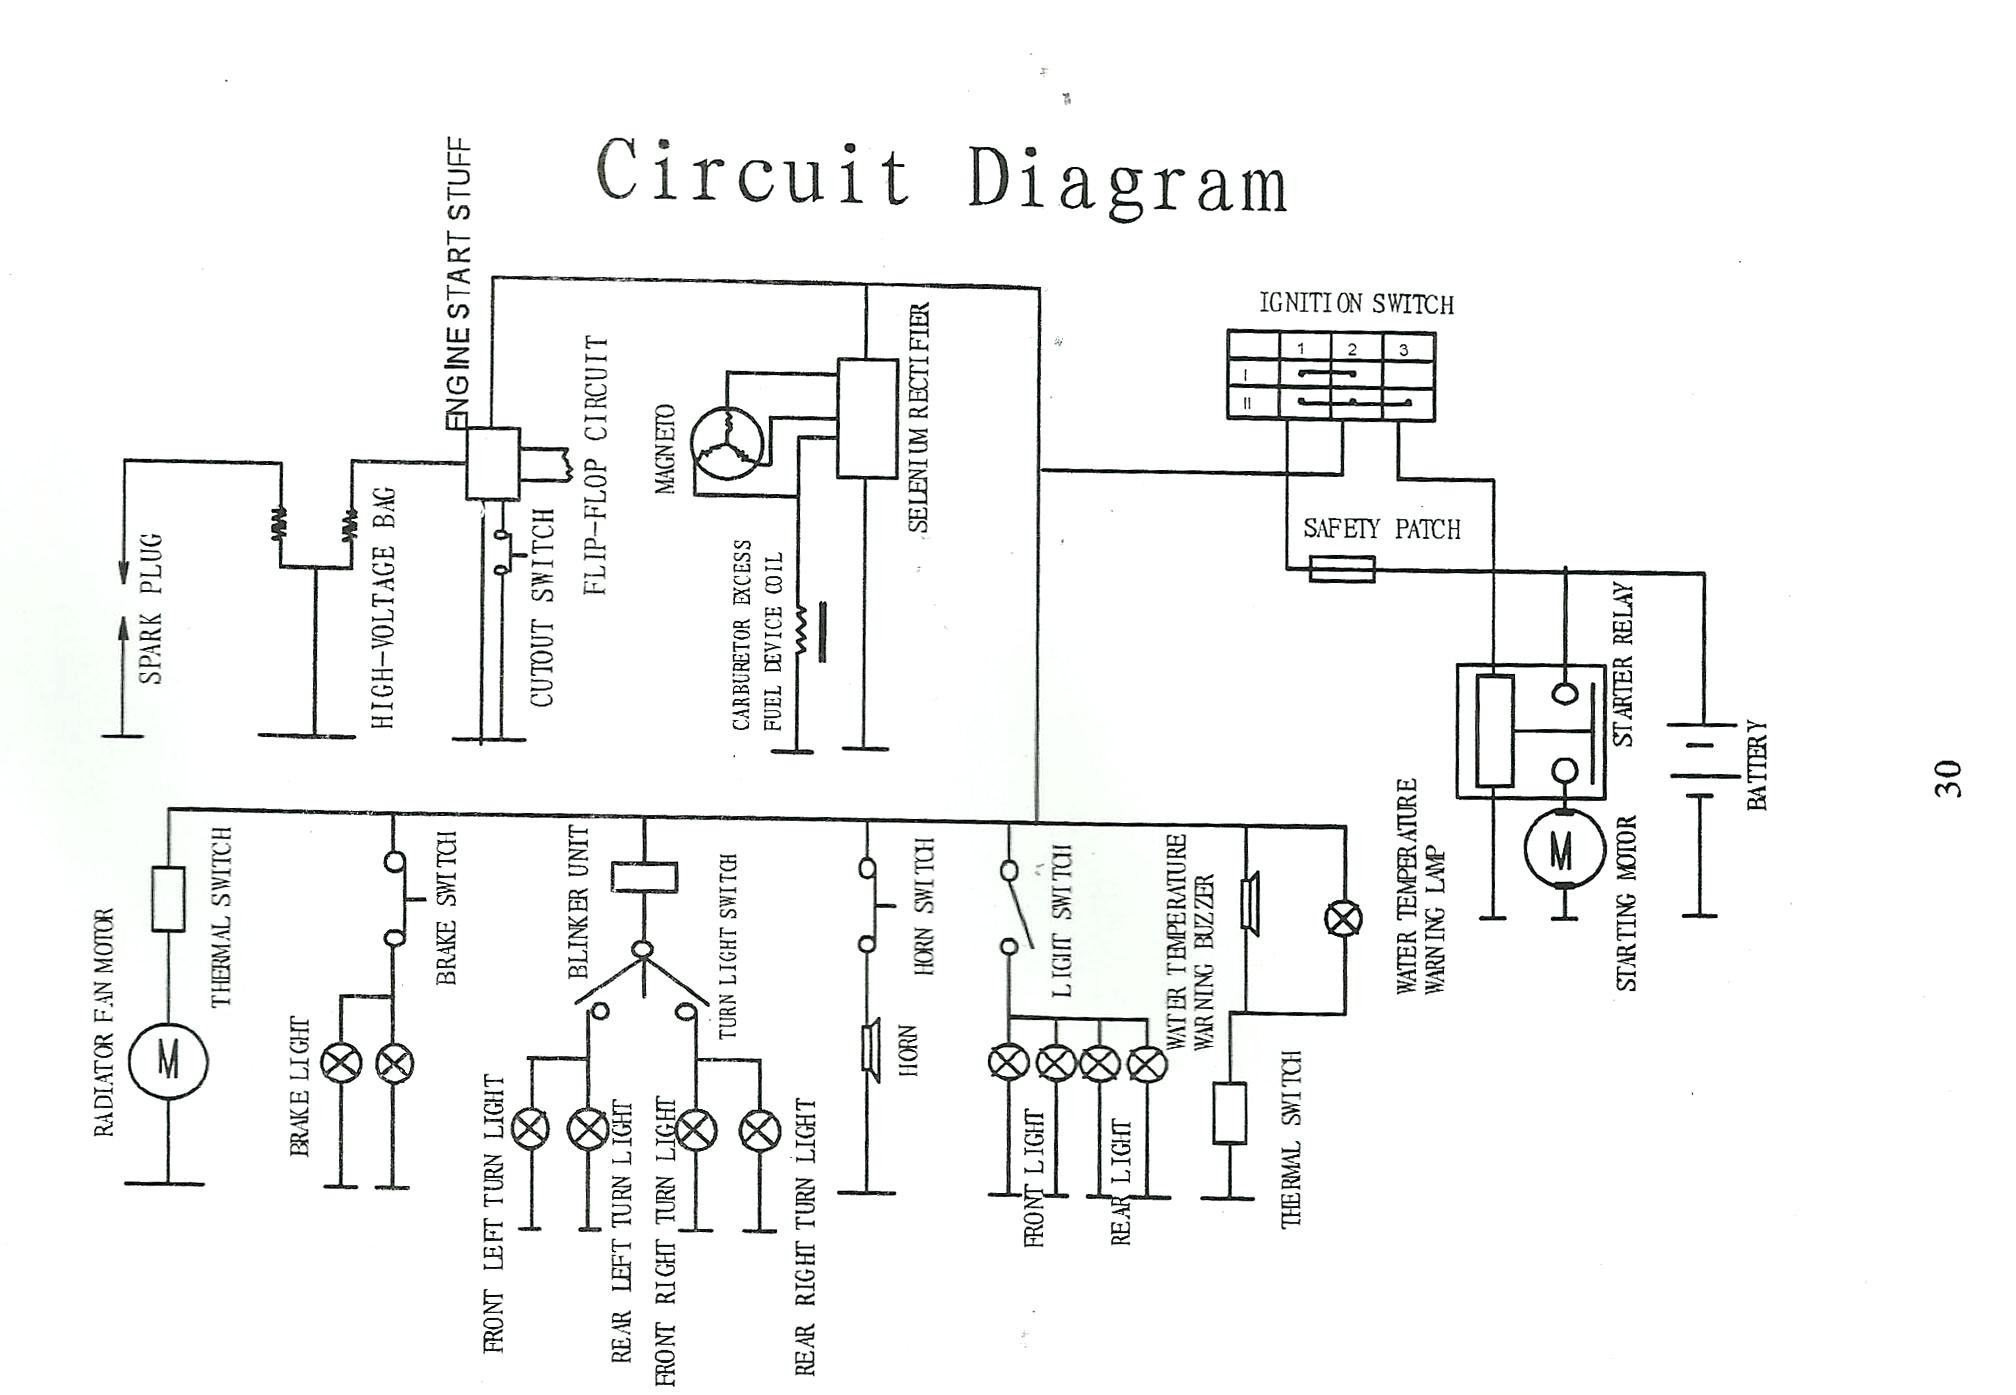 43cc mini bike wiring diagram wiring schematic diagram harley softail wiring diagram 43cc harley chopper wiring diagram #11